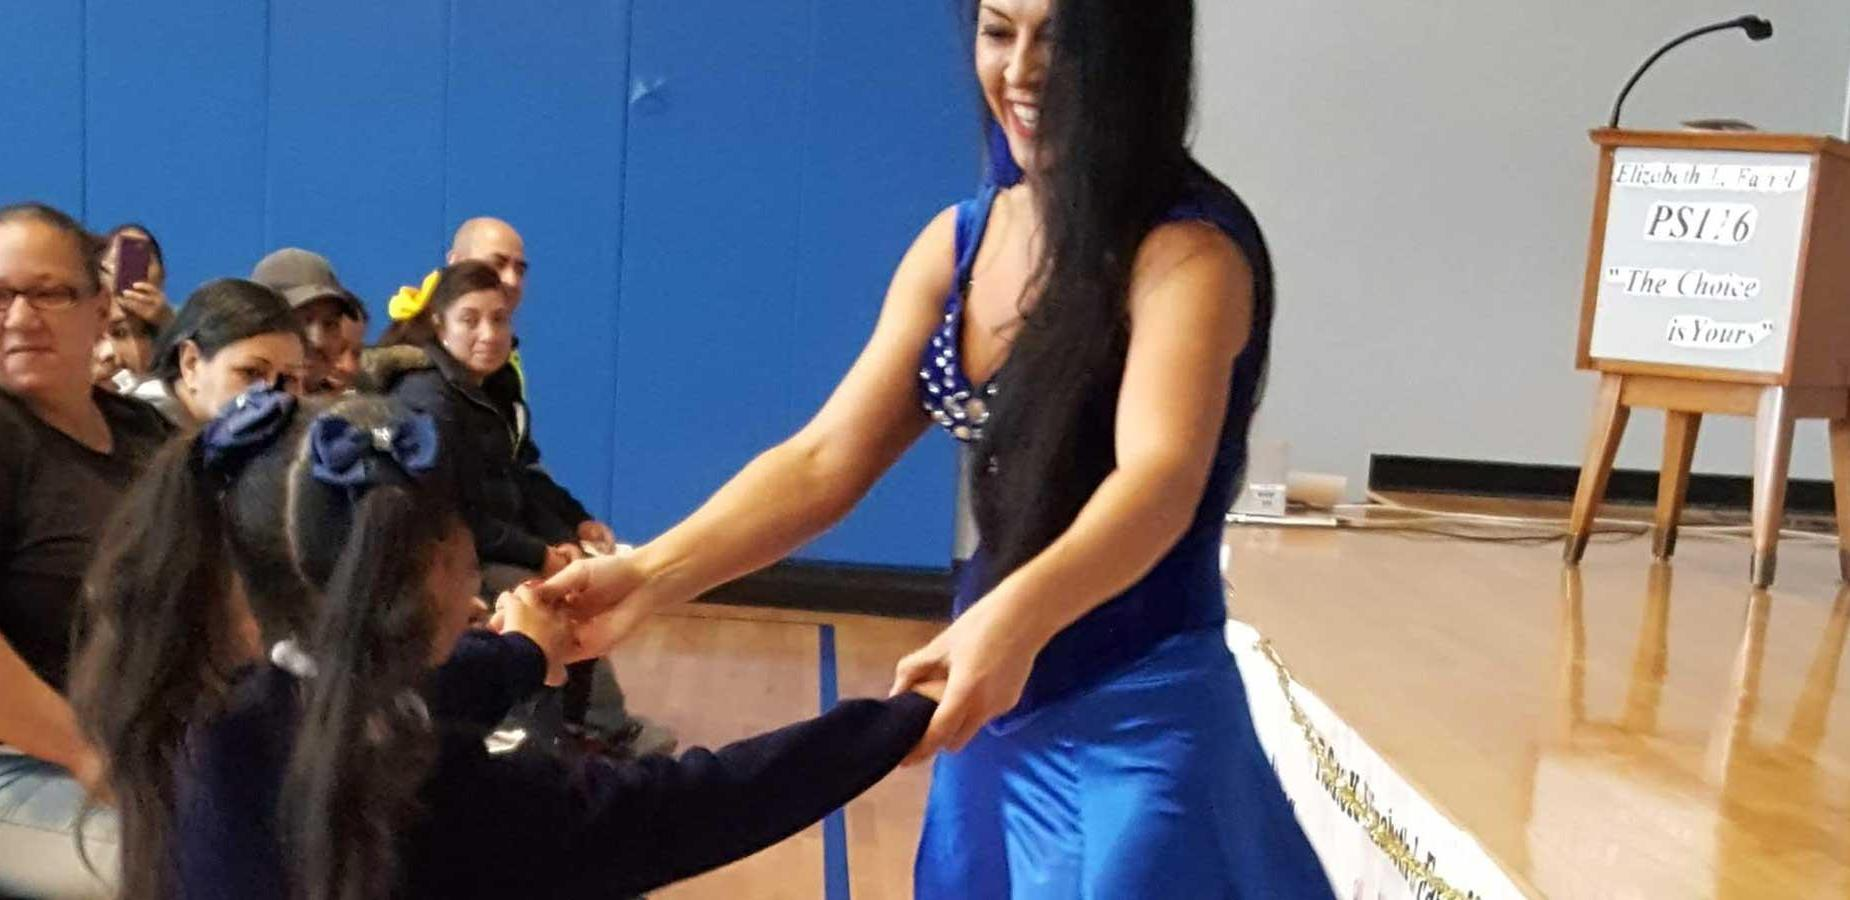 Flamenco Dancer, dances with a student at front of stage with parents looking on.